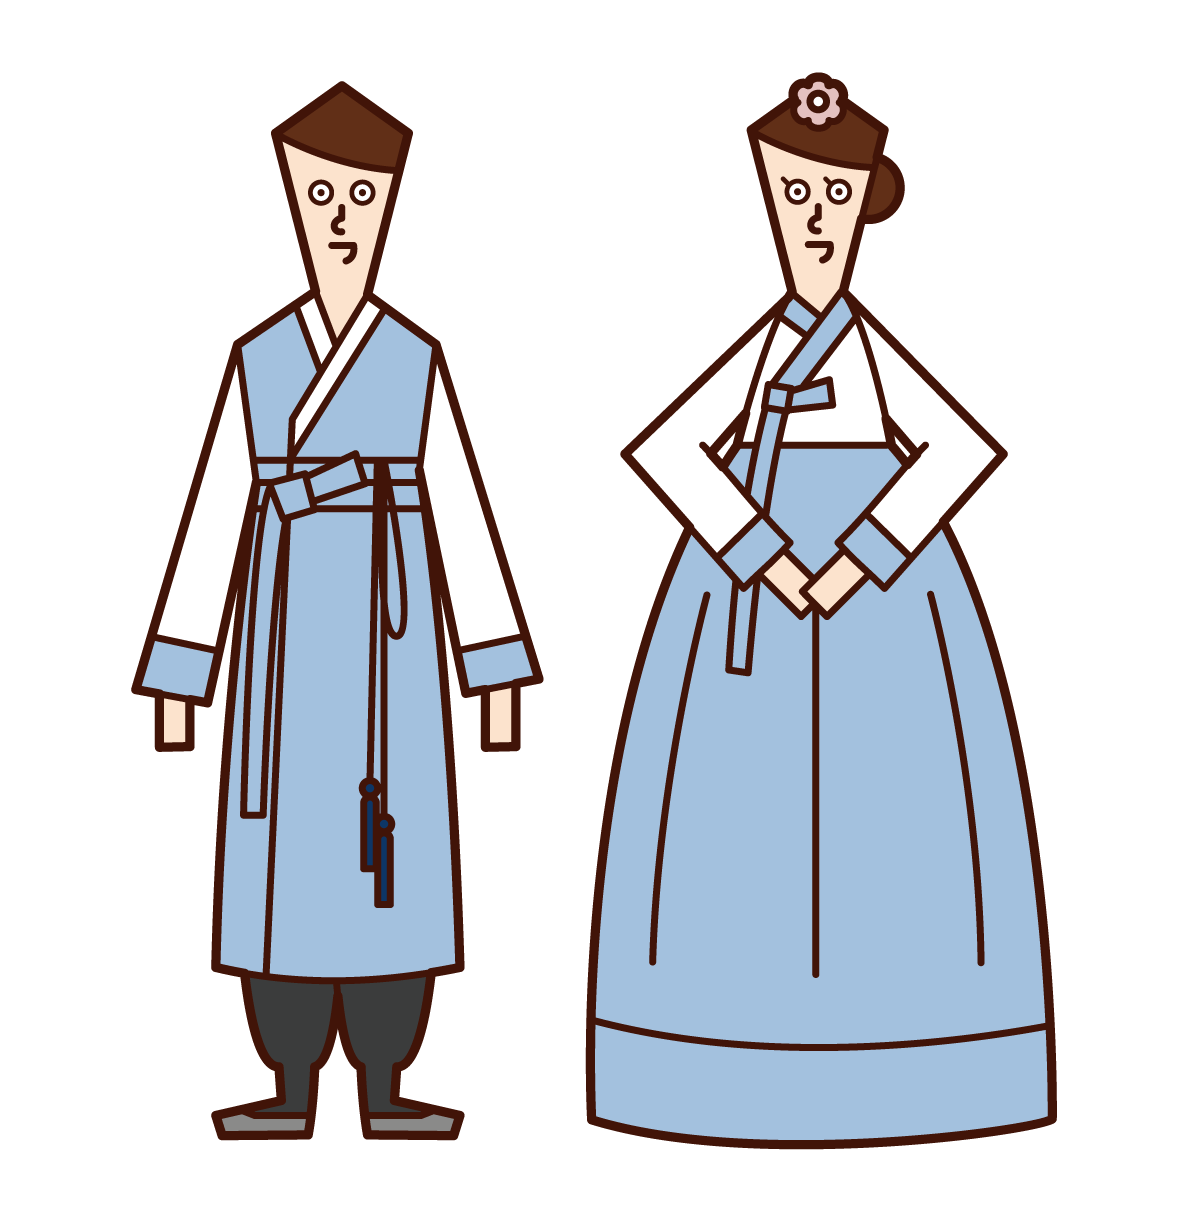 Illustration of a bride and groom (Chimachogori) in Hanbo